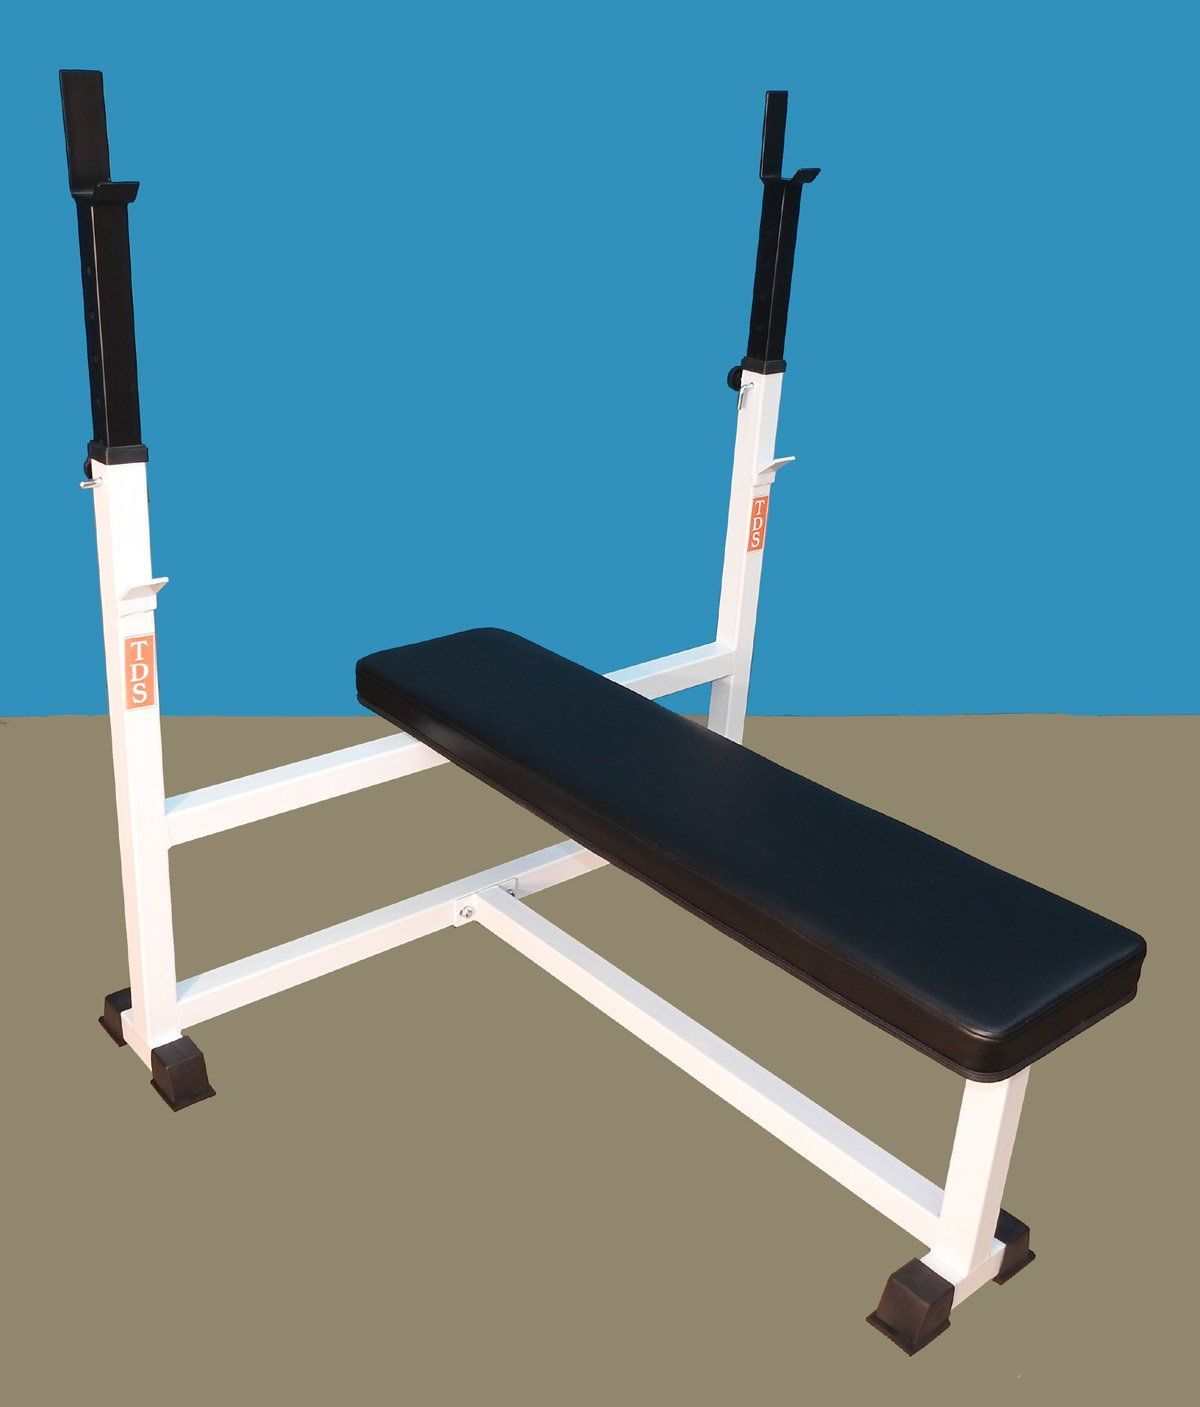 Tds Mega Flat Bench Adjustable Uprights 3 Thick Commercial Quality Padding 1000 Lb Capacity Olympic Bar Shown For Information Bench Sport Fitness Olympics